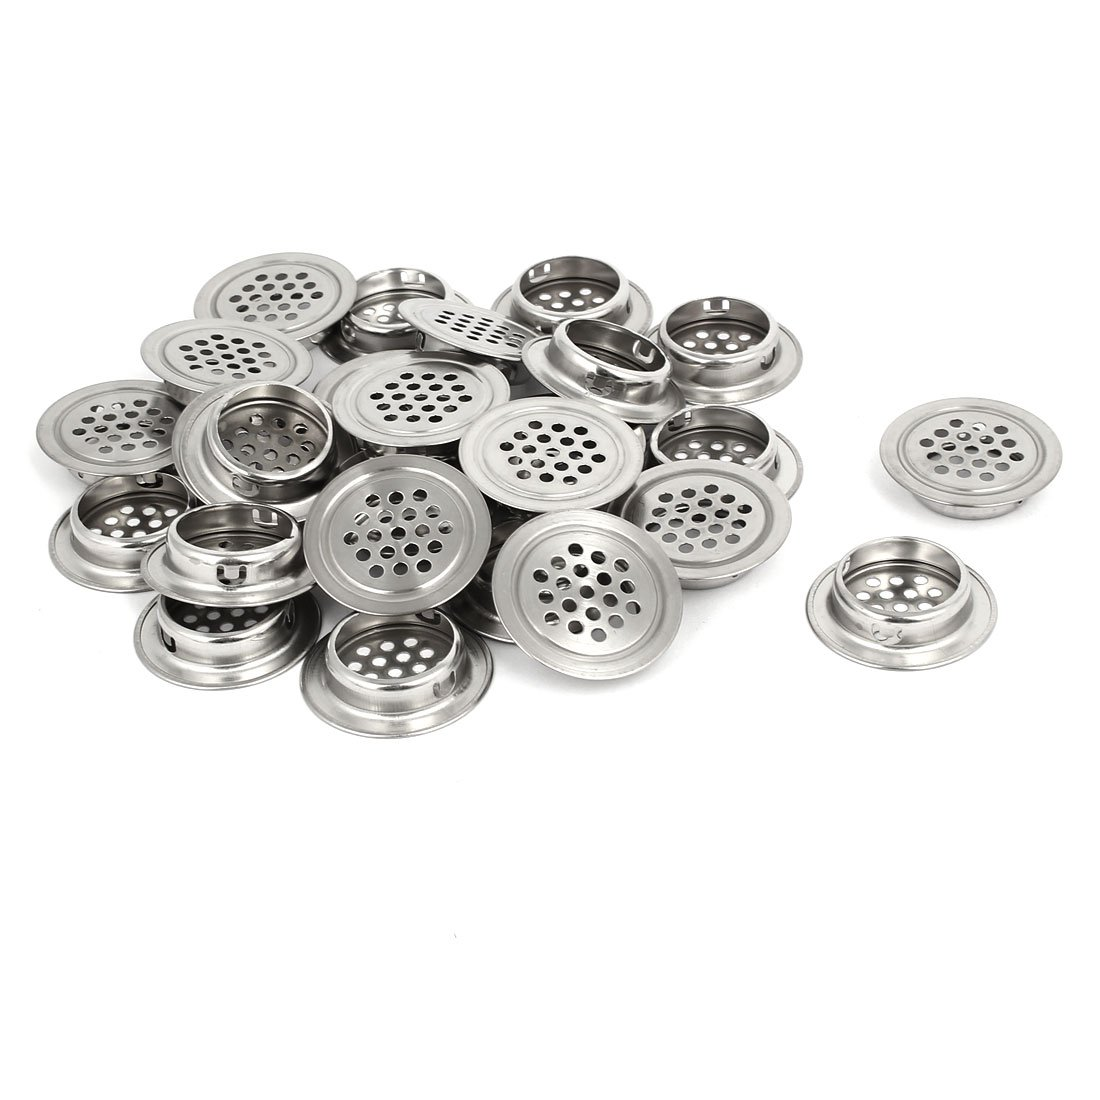 uxcell 28.5mm Bottom Dia Stainless Steel Round Shaped Mesh Hole Air Vent Louver 25pcs